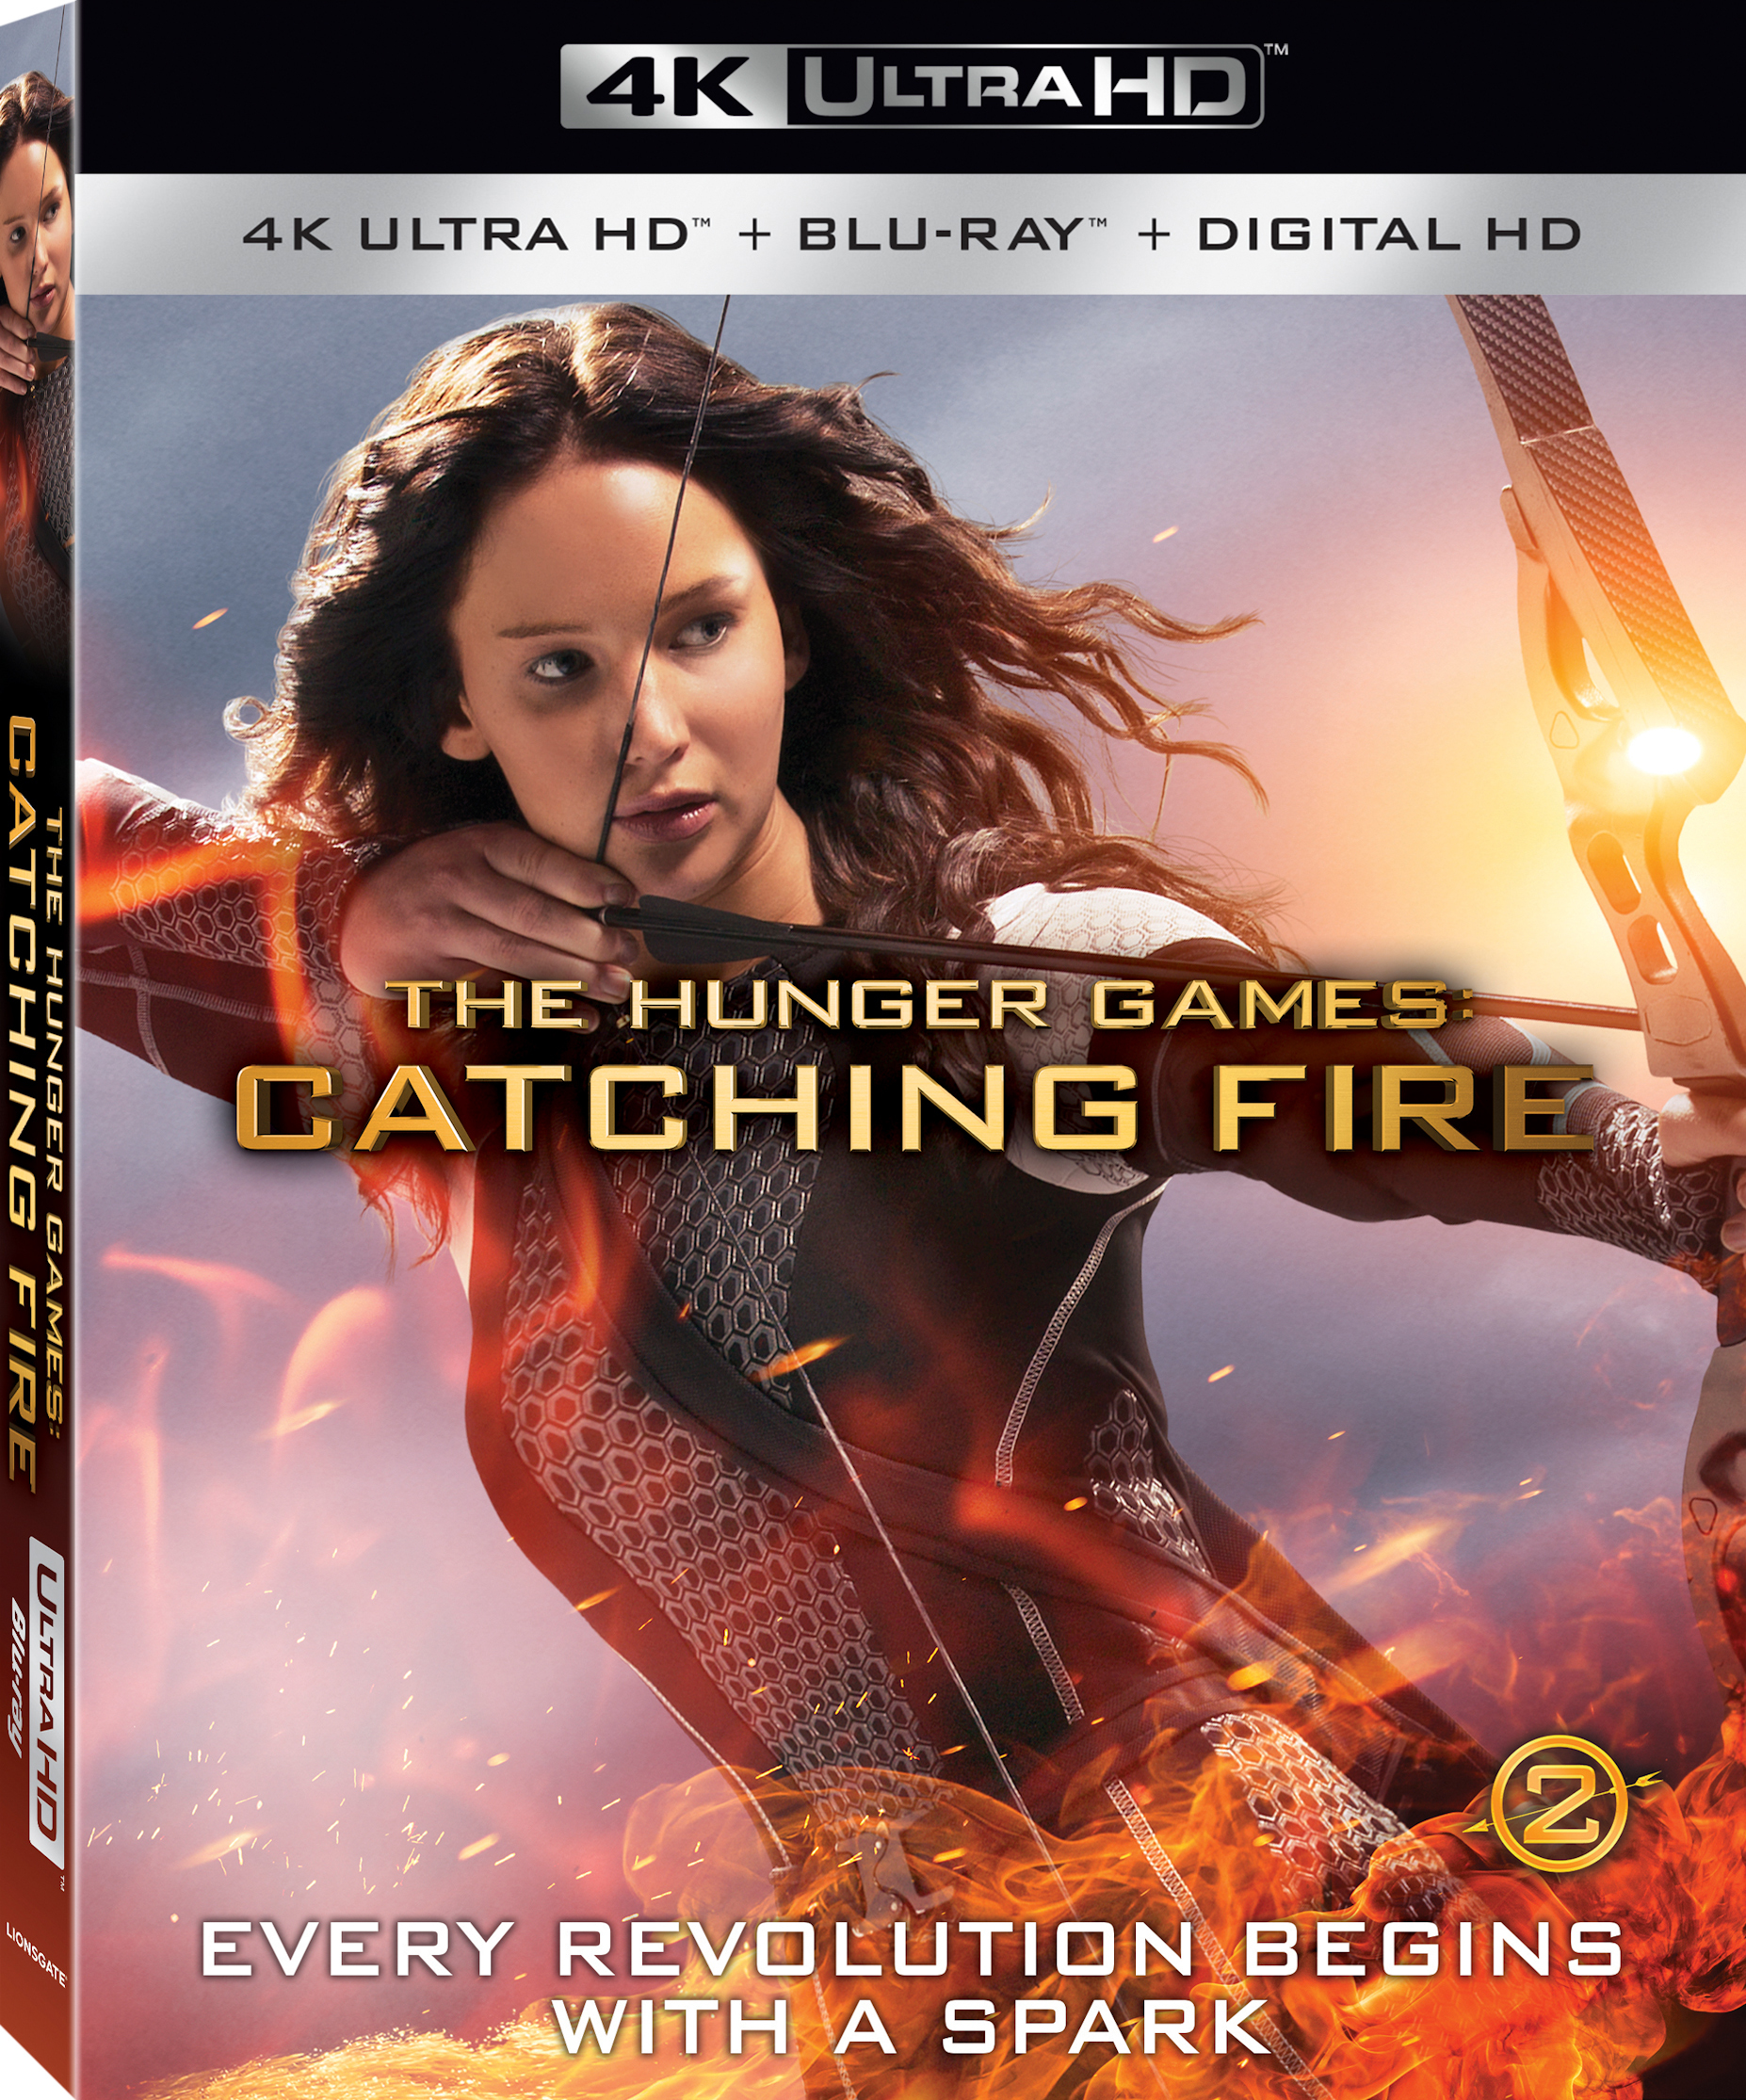 The Hunger Games: Catching Fire (2013) 4K Ultra HD Blu-ray